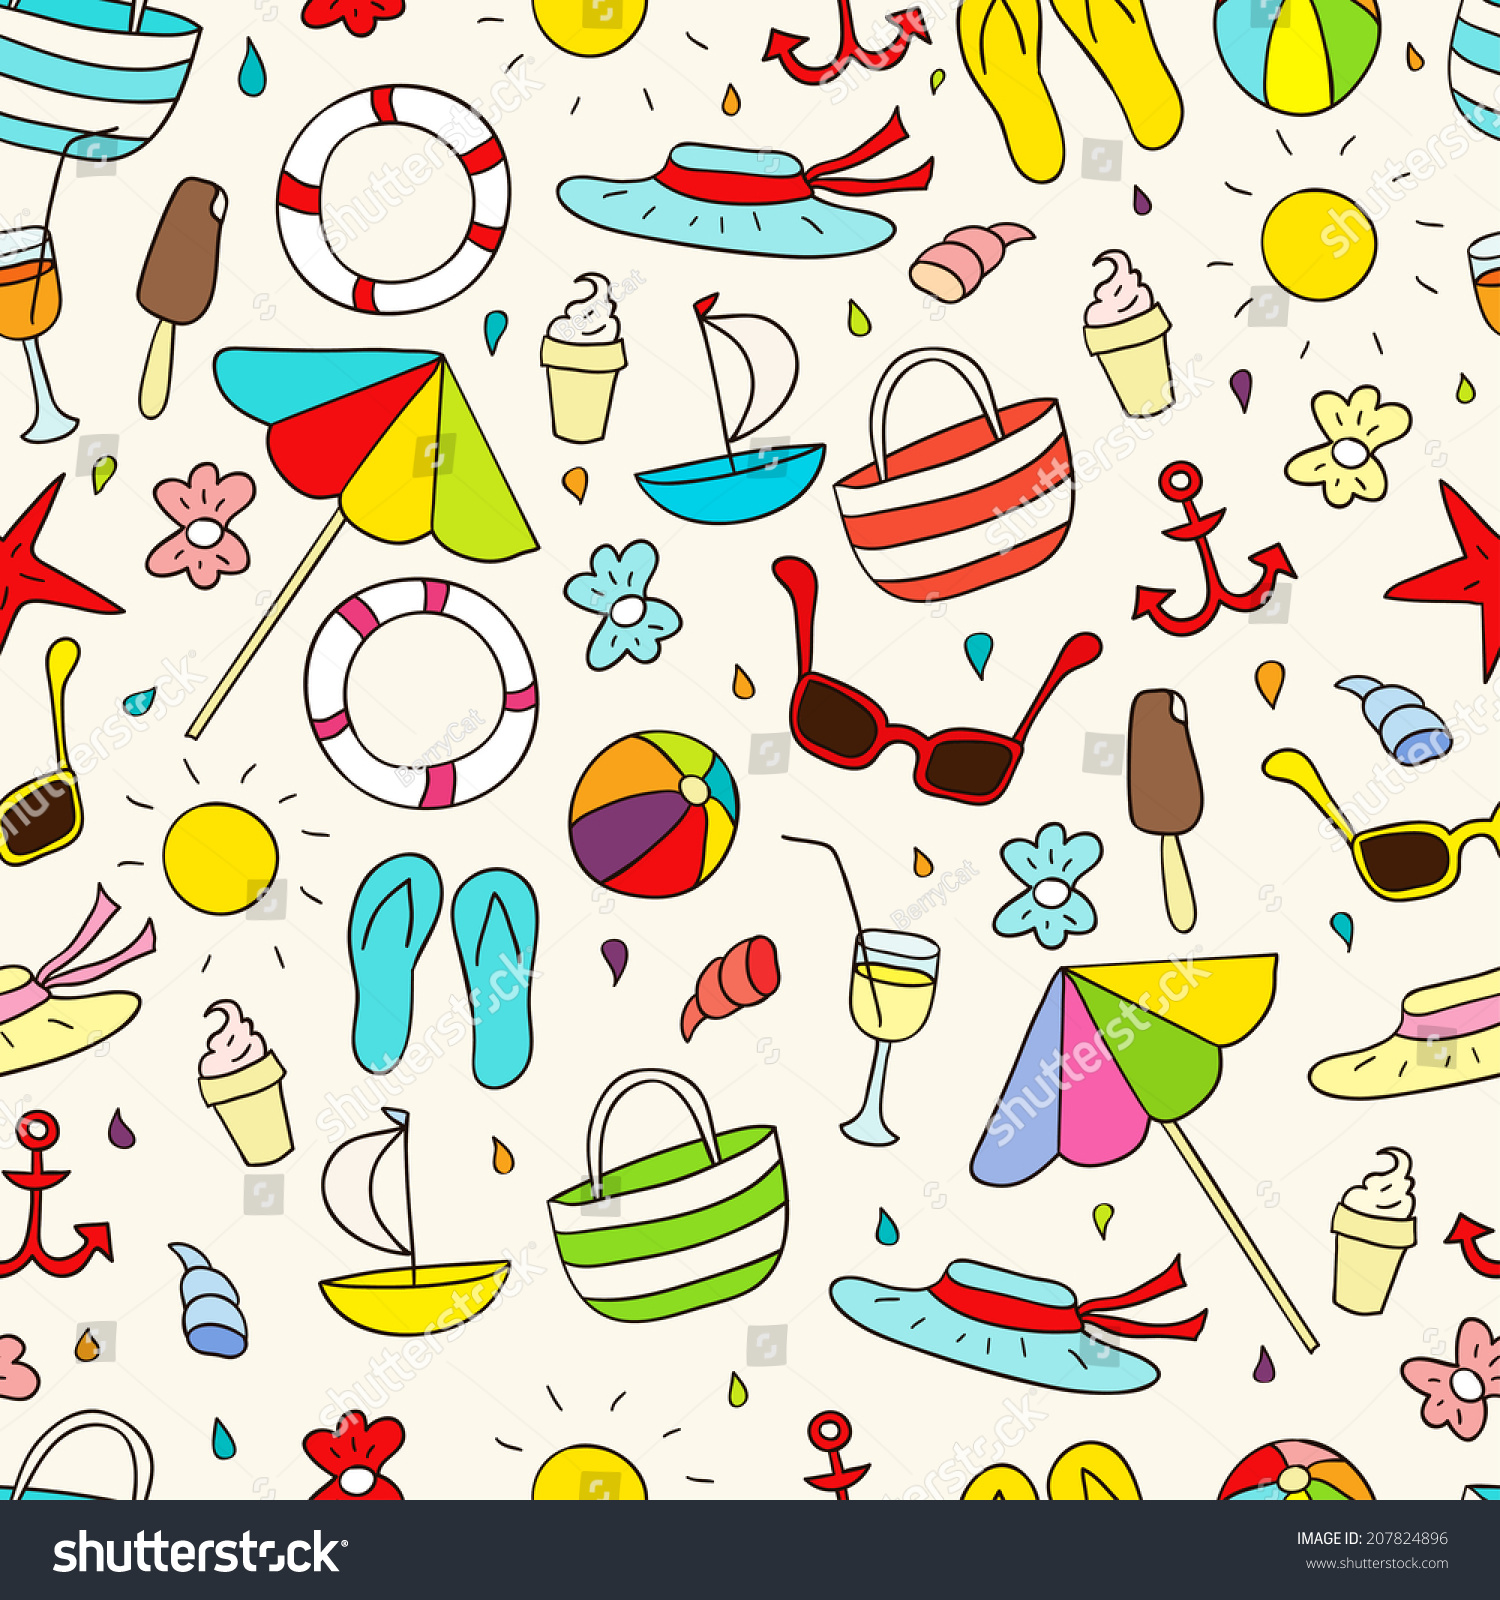 Scrapbook paper beach - Beach Elements Ideal For Scrapbooking Wrapping Paper Children S Textiles